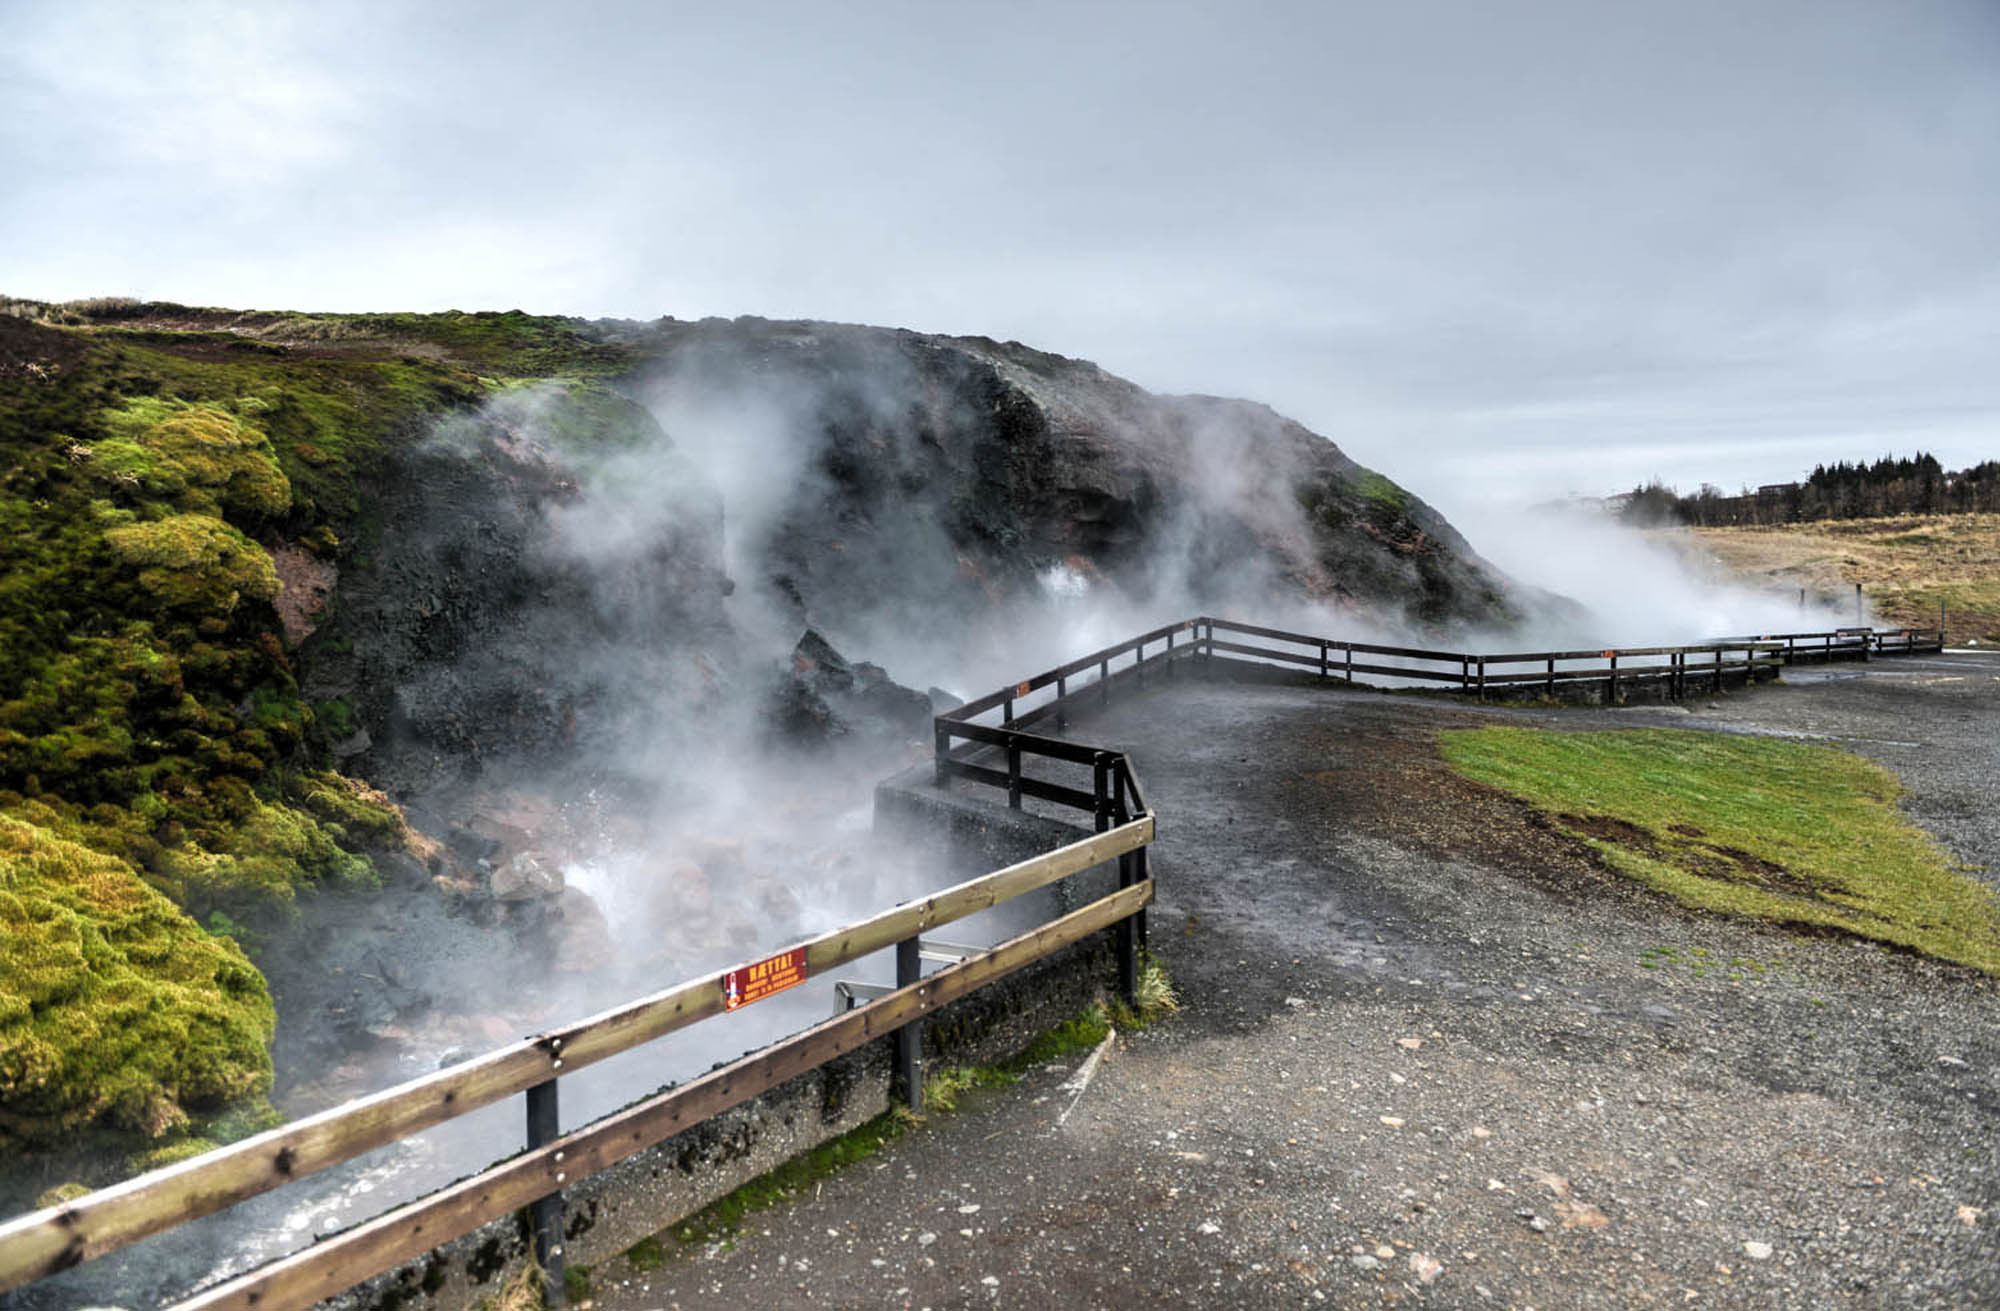 Deildartunguhver hotspring - West Iceland